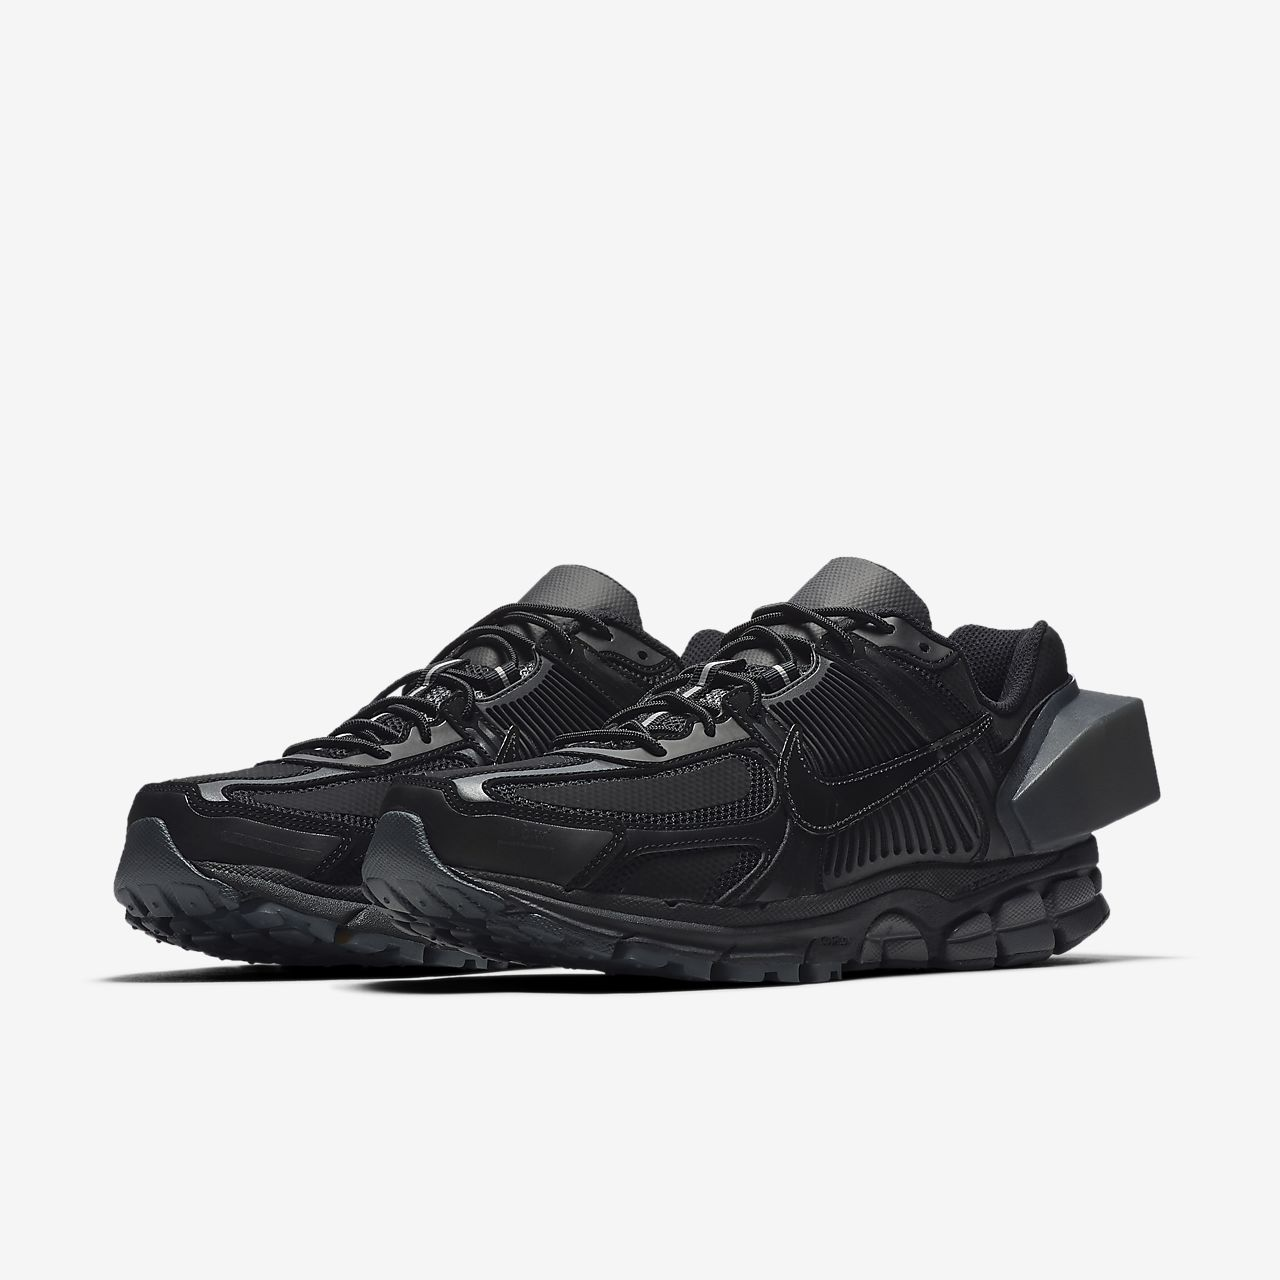 size 40 5d446 5a14d ... Nike x A-COLD-WALL Zoom Vomero +5 Schoen